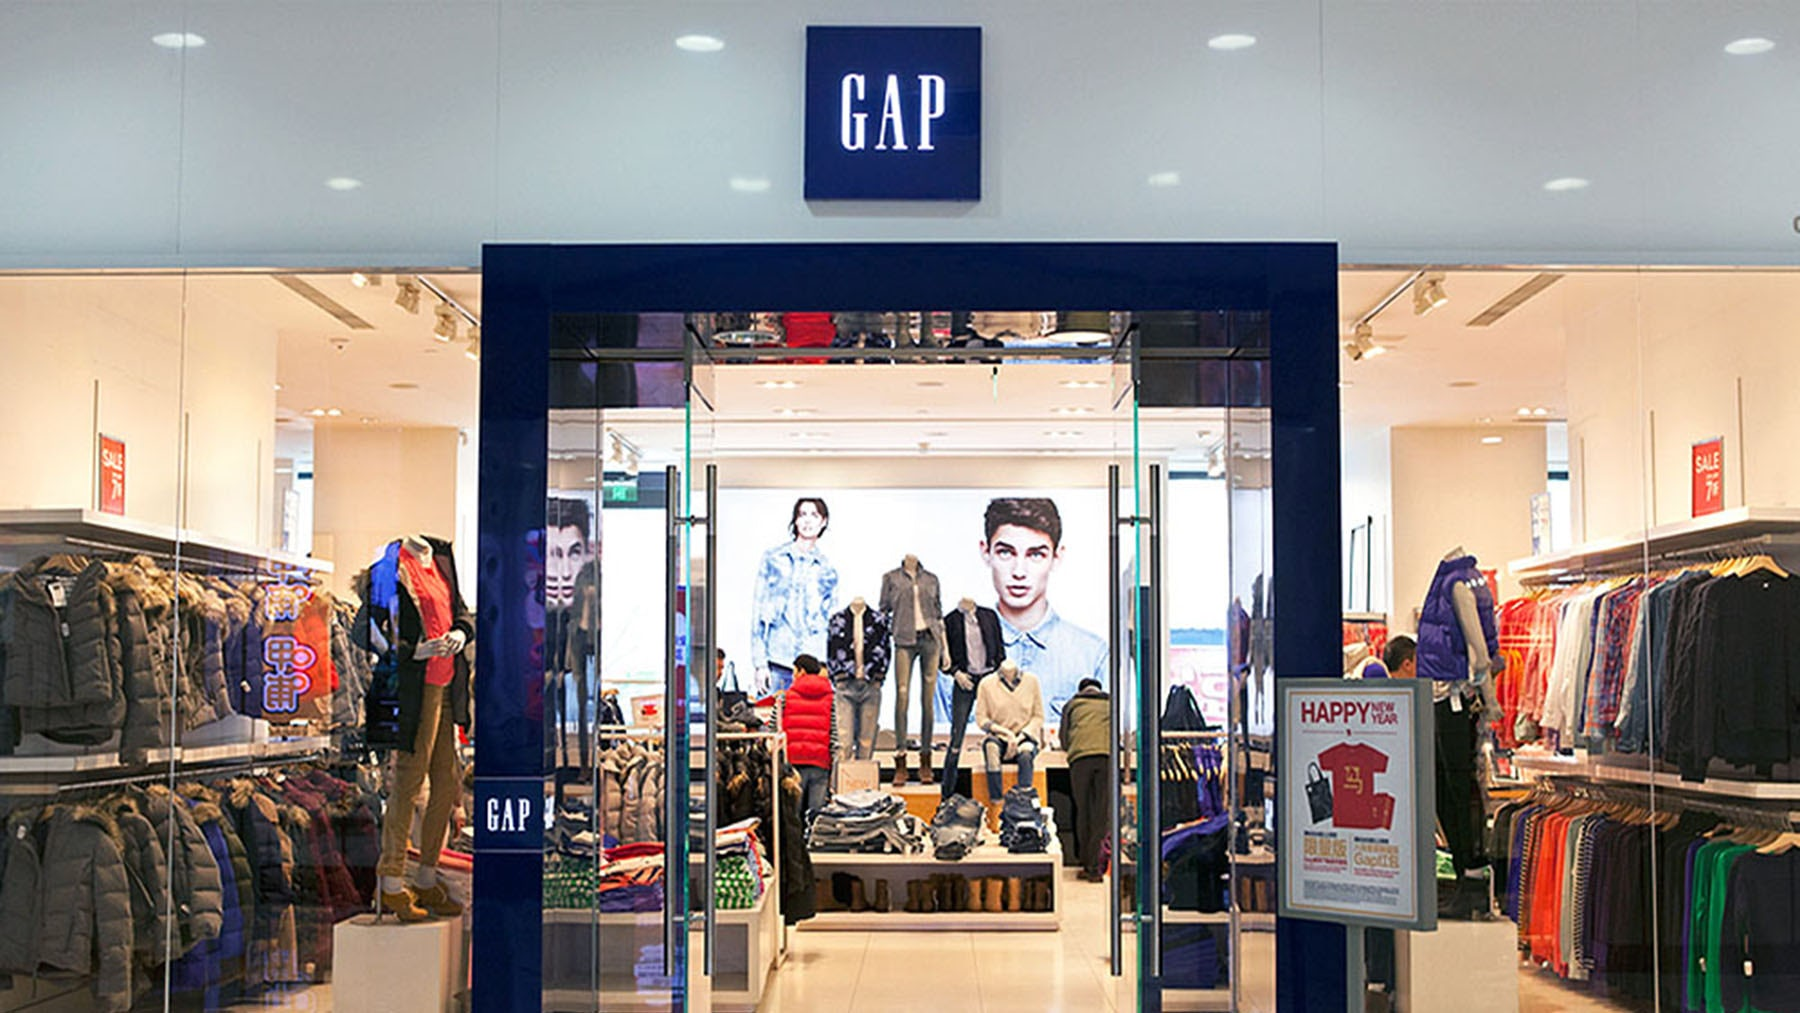 Gap Sinks After CEO of Ailing Flagship Brand Leaves